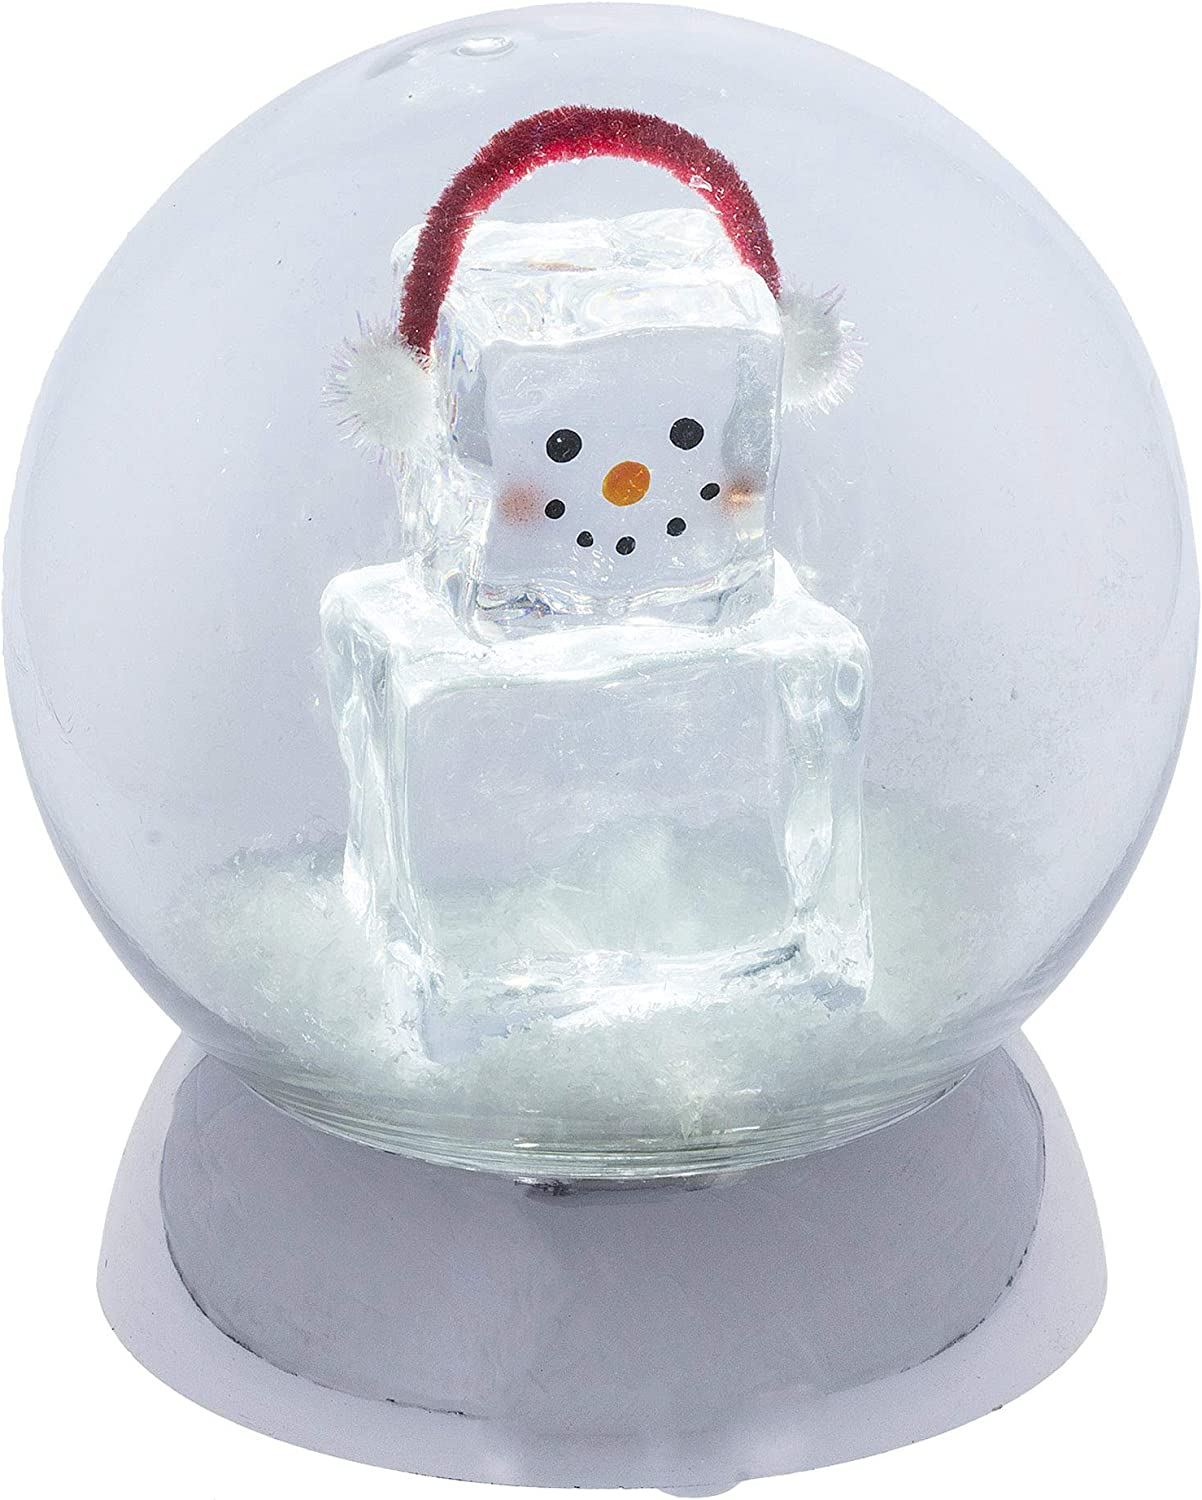 Midwest-CBK 67% OFF of fixed Daily bargain sale price Lighted LED Shimmer Globe Fella Ice